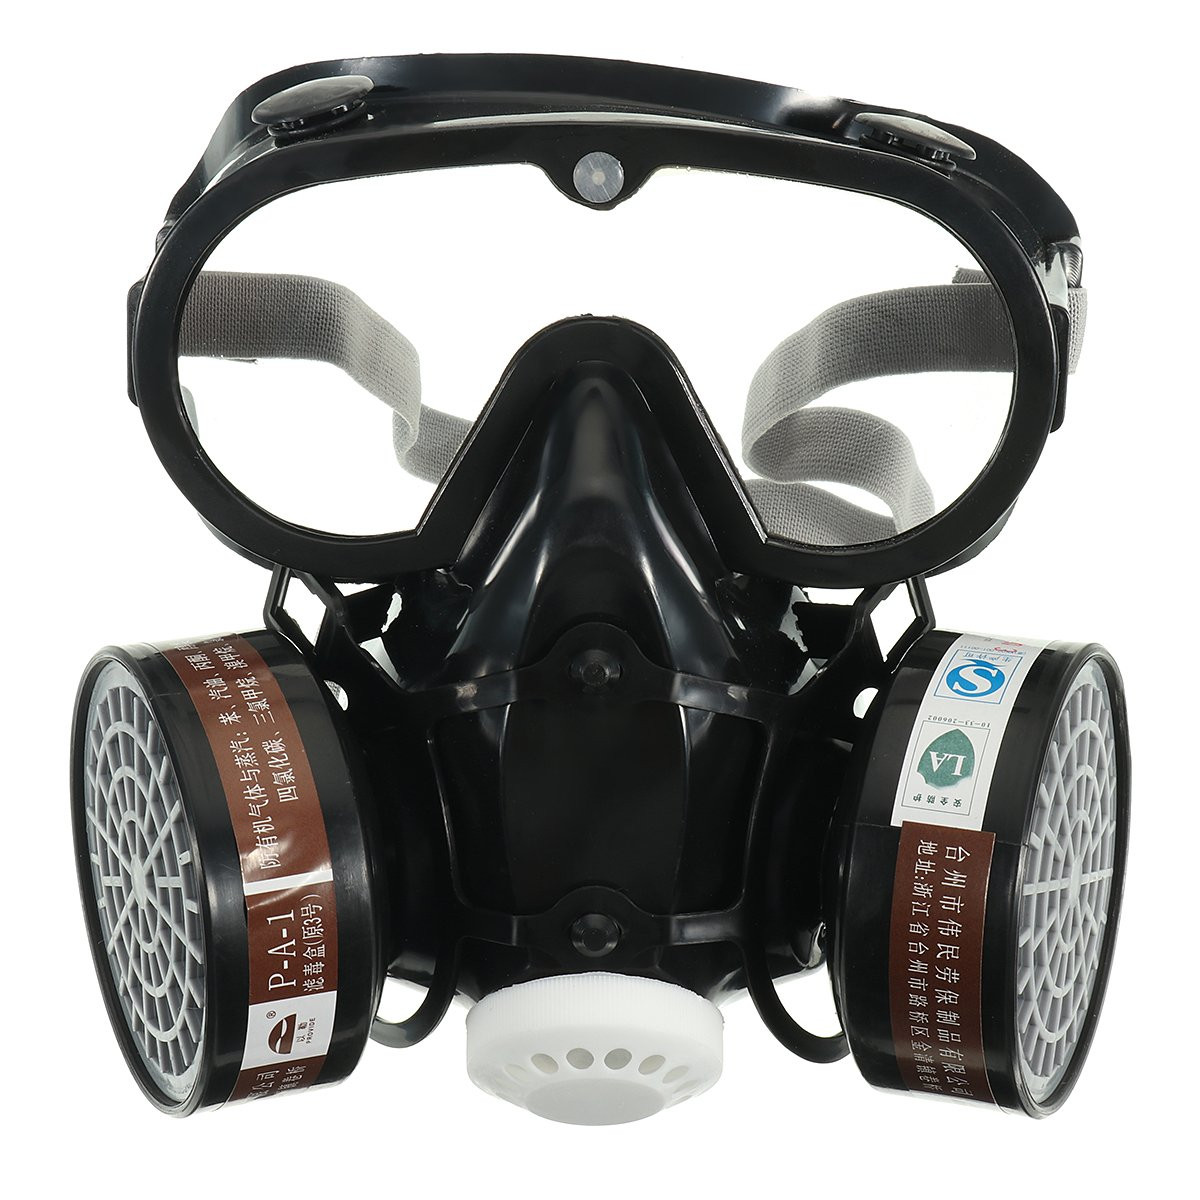 OlogyMart Respirator Gas Mask Safety Chemical Anti-Dust Filter Military Eye Goggle Set Workplace Safety Prote